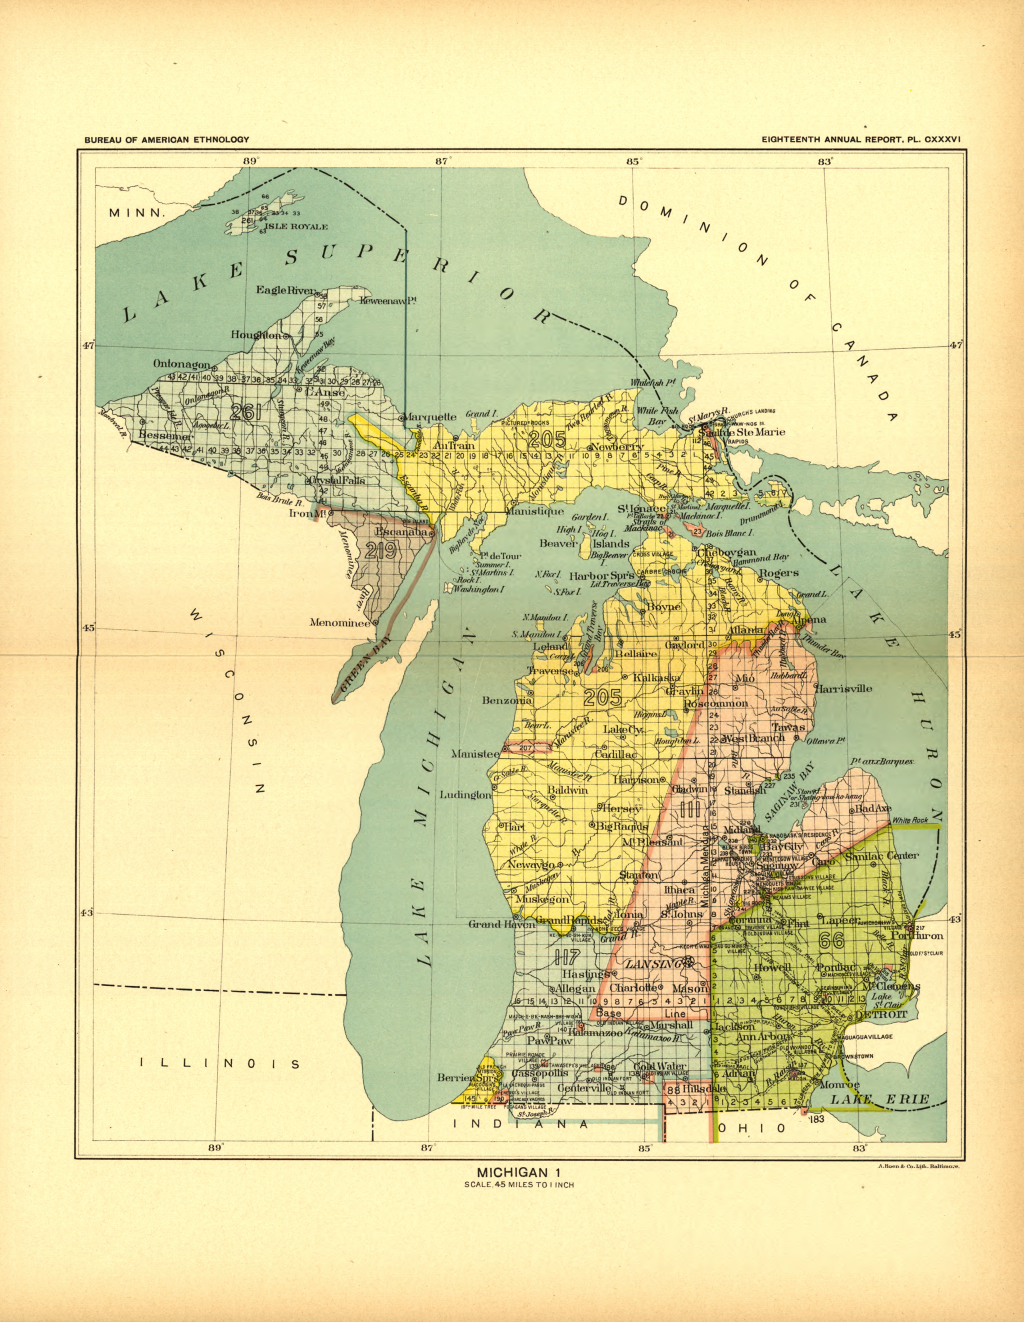 Glifwc ceded territory royce michigan 1 map 29 publicscrutiny Image collections